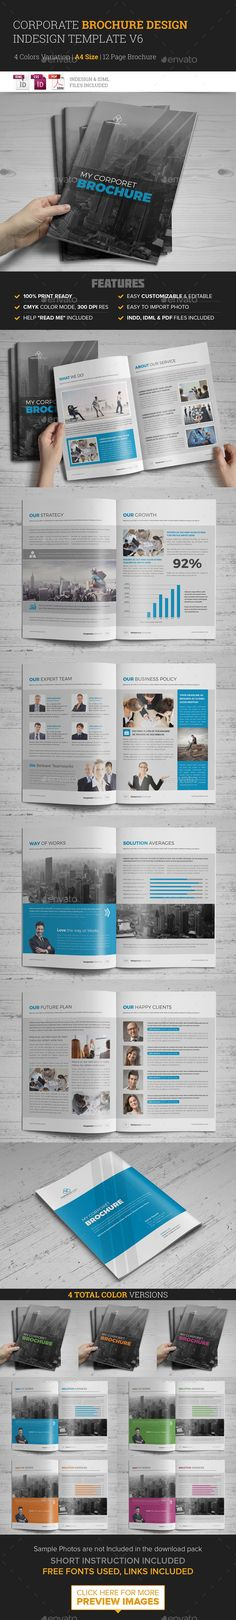 Corporate Multipurpose Brochure Template #design #print Download: http://graphicriver.net/item/corporate-multipurpose-brochure-template-v6-/11943795?ref=ksioks